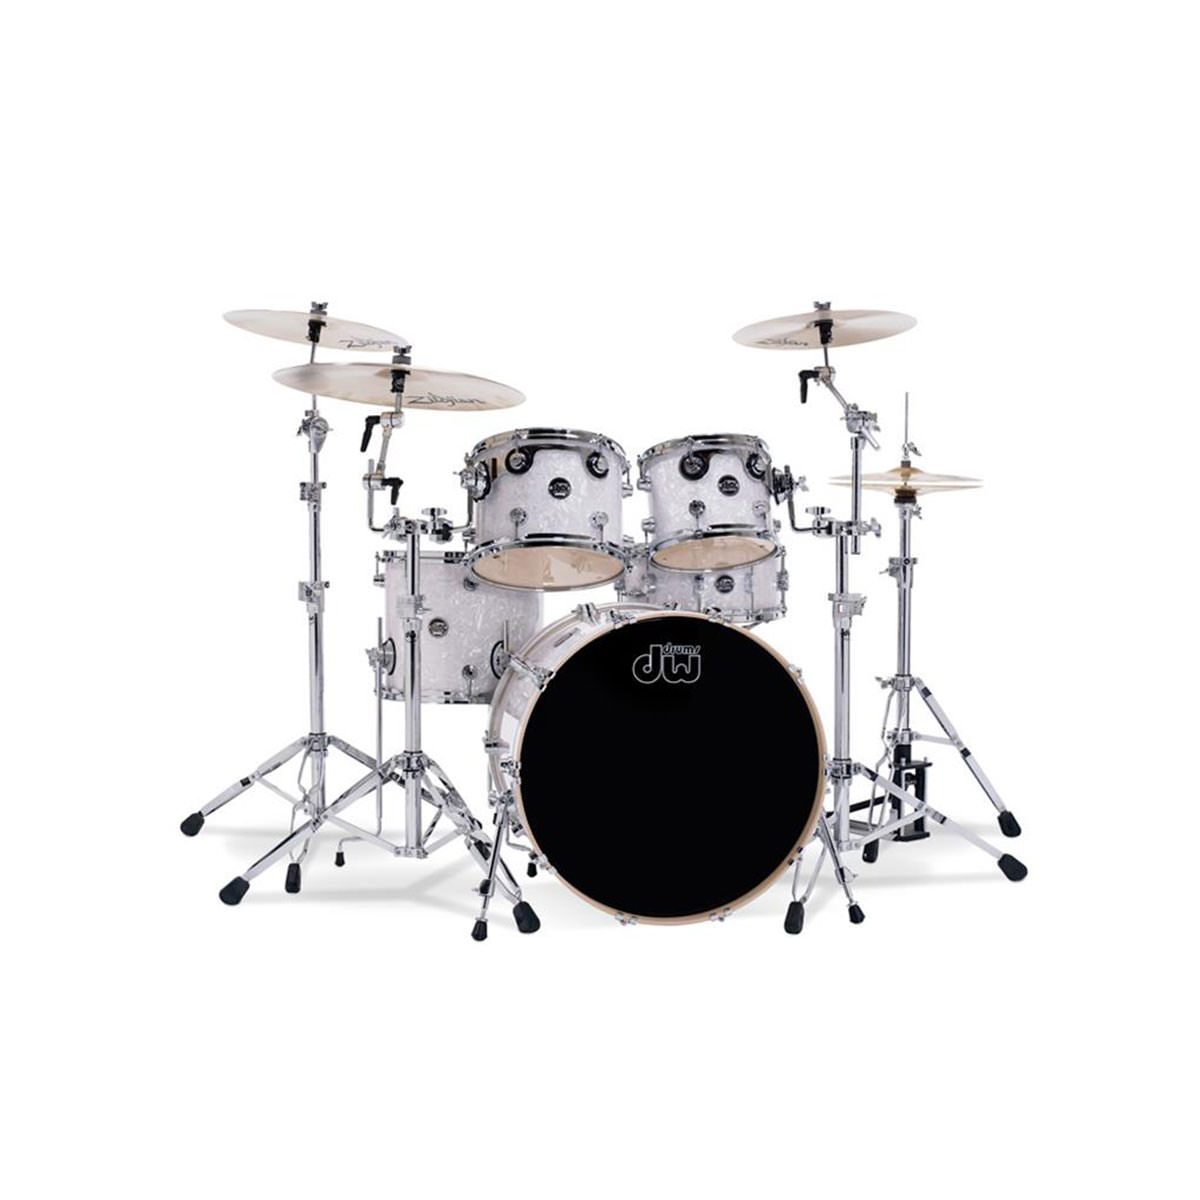 DW Performance 5 Piece Shell Pack - White Marine